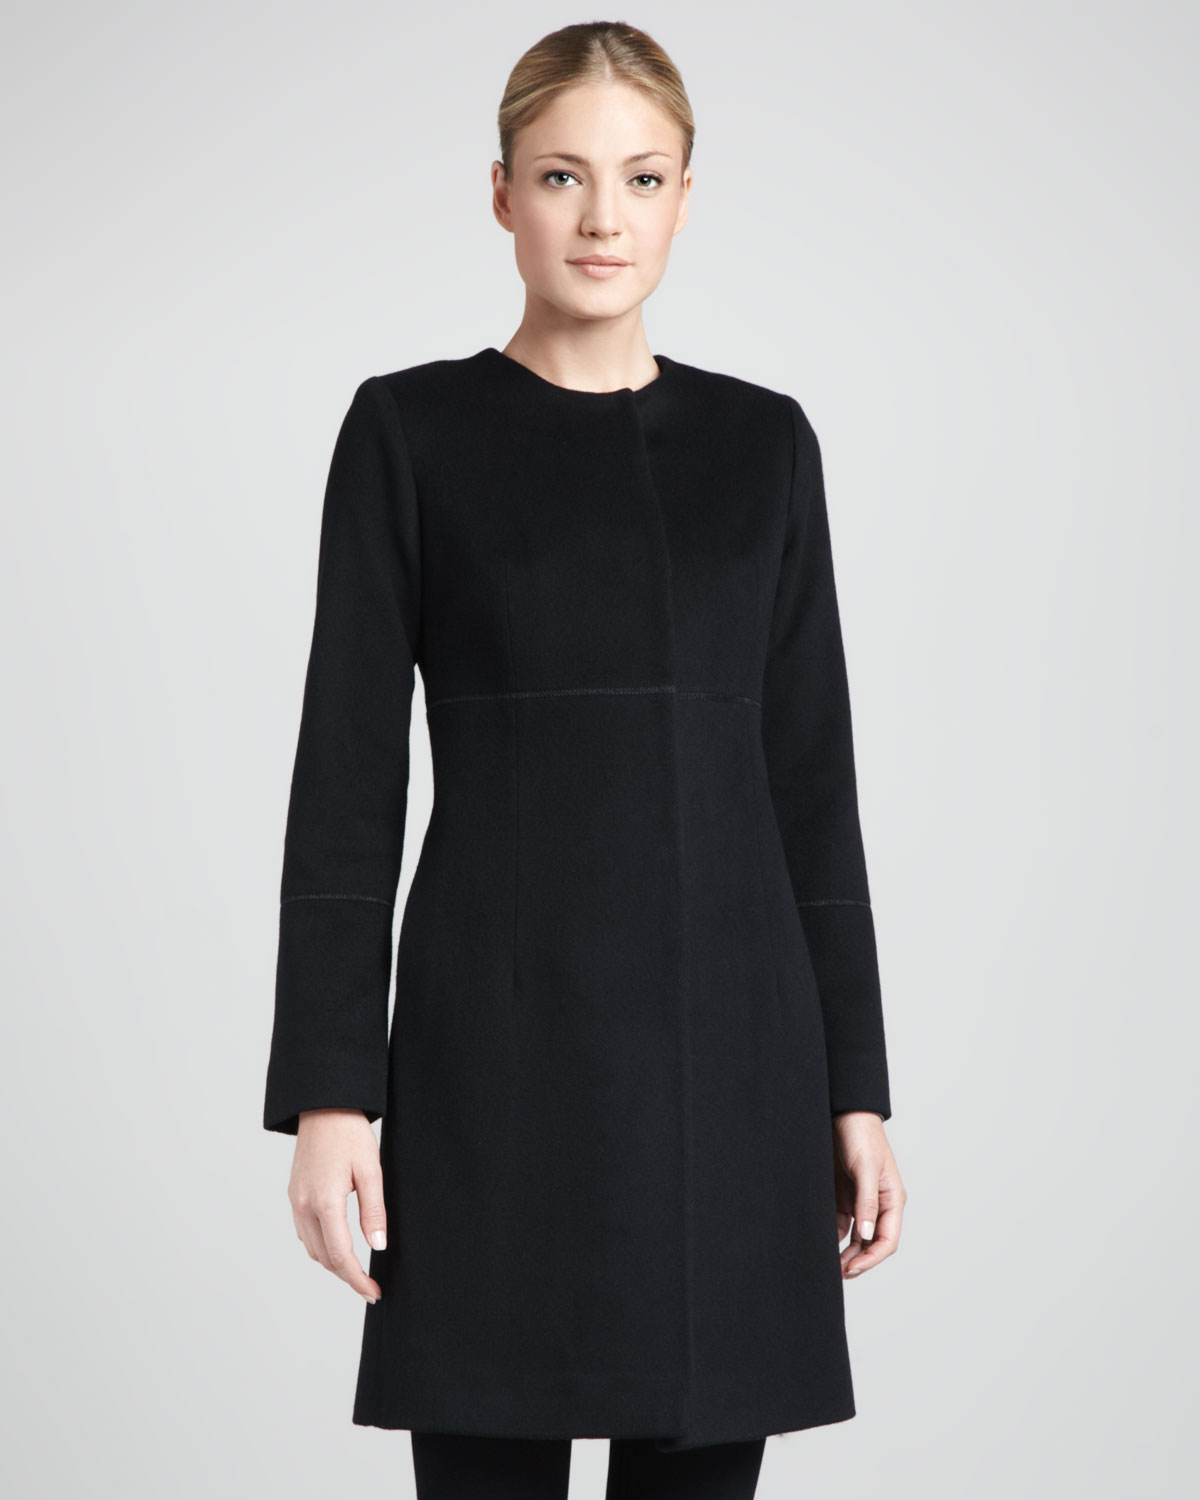 Fleurette Collarless Pickstitched Wool Empire Coat in Black | Lyst